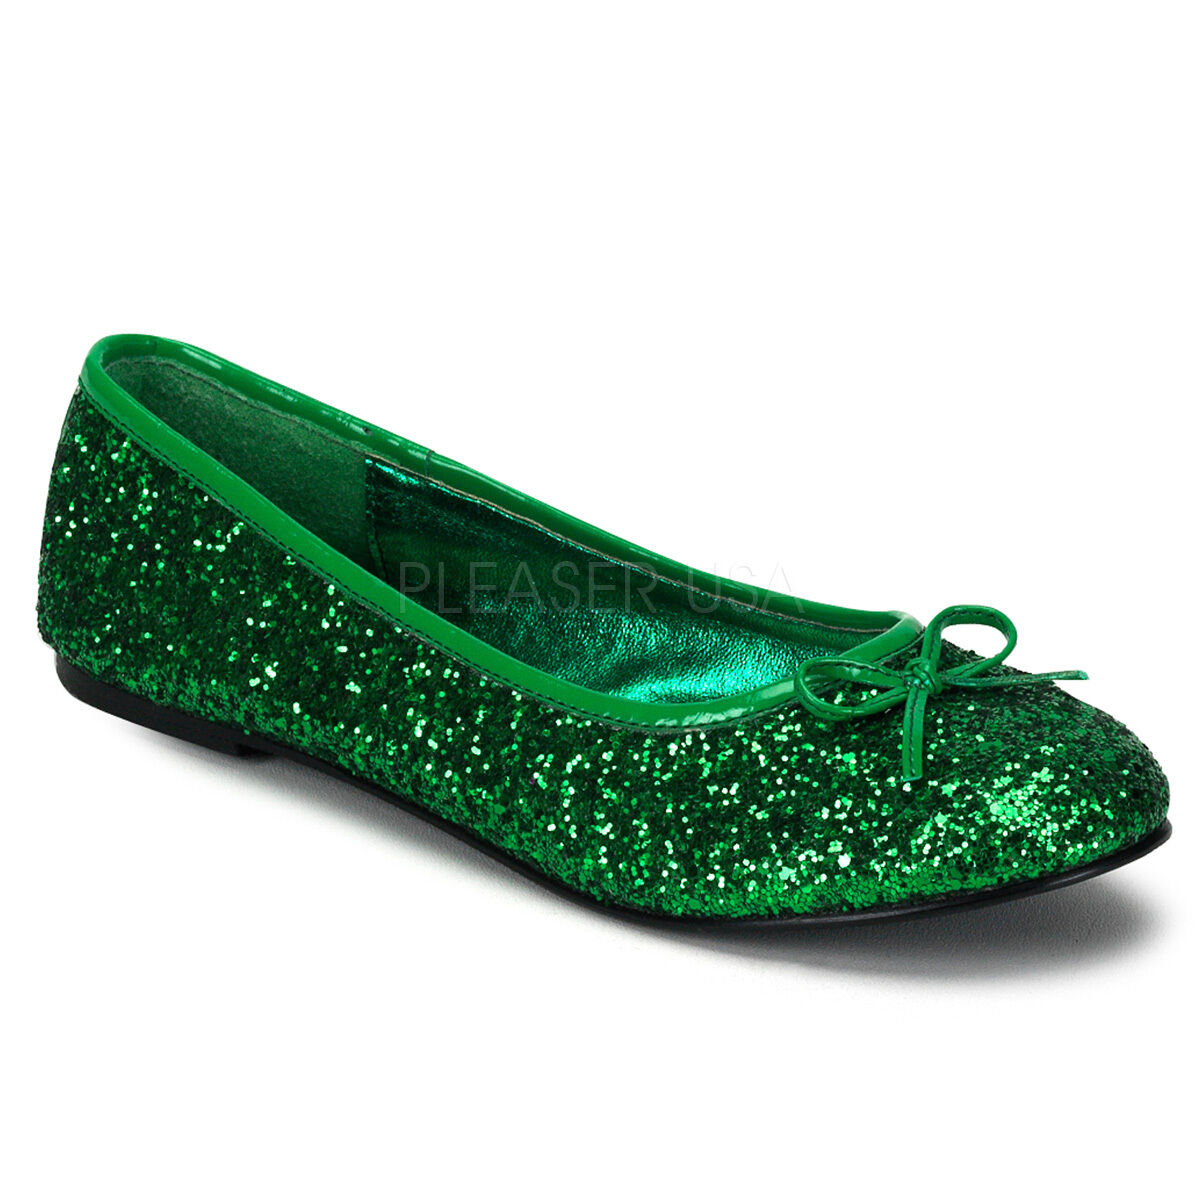 STAR16G GRN Women's Basic Classic Cute Sparkle Green Glitter Flats Costume shoes